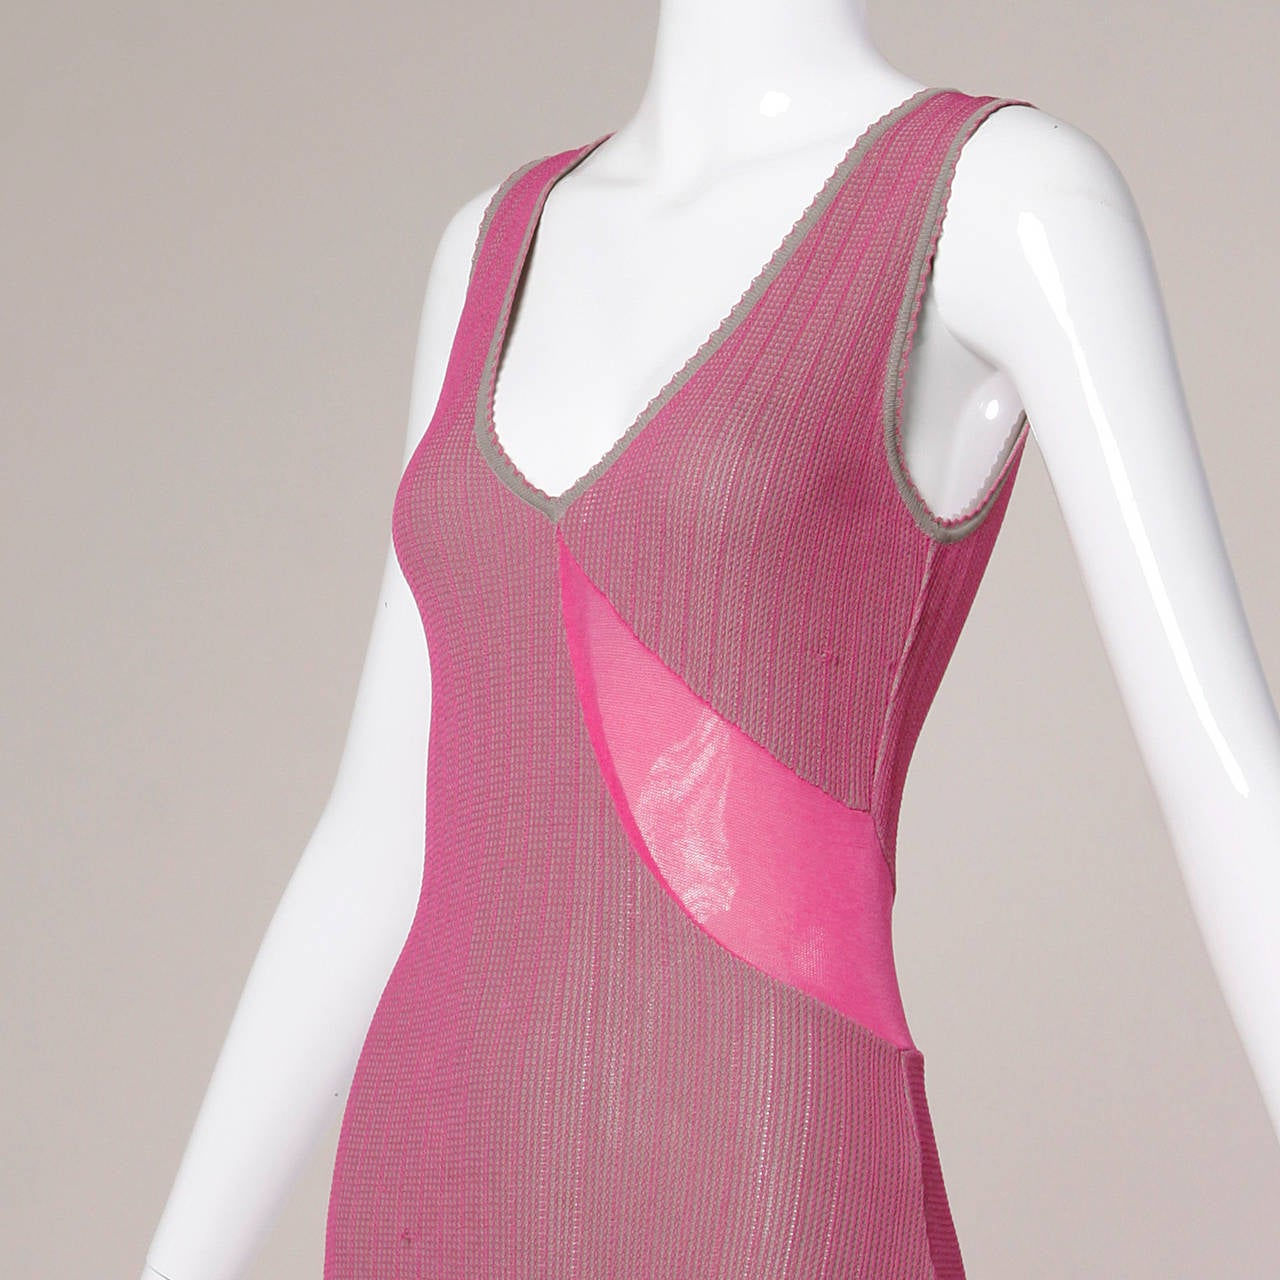 Herve Leger 1990s 90s Pink + Gray Knit Cut Out Sheer Mesh Bandage Maxi Dress 2